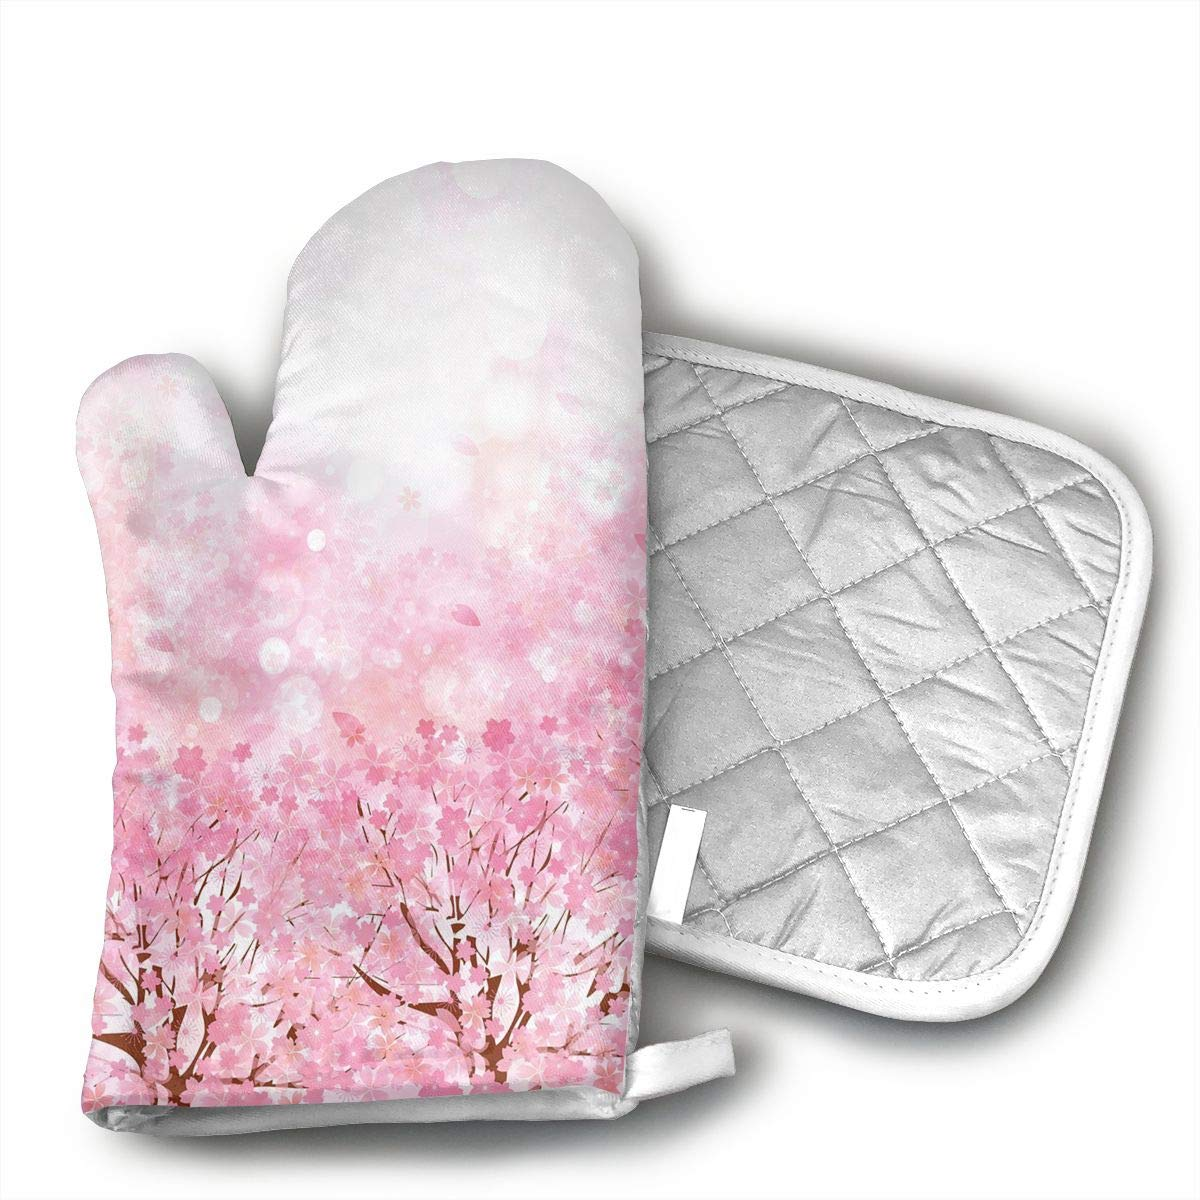 QEDGC Japanese Cherry Blossom Oven Mitts of Quilted Cotton Lining - Heat Resistant Kitchen Gloves,Flame Oven Mitt Set